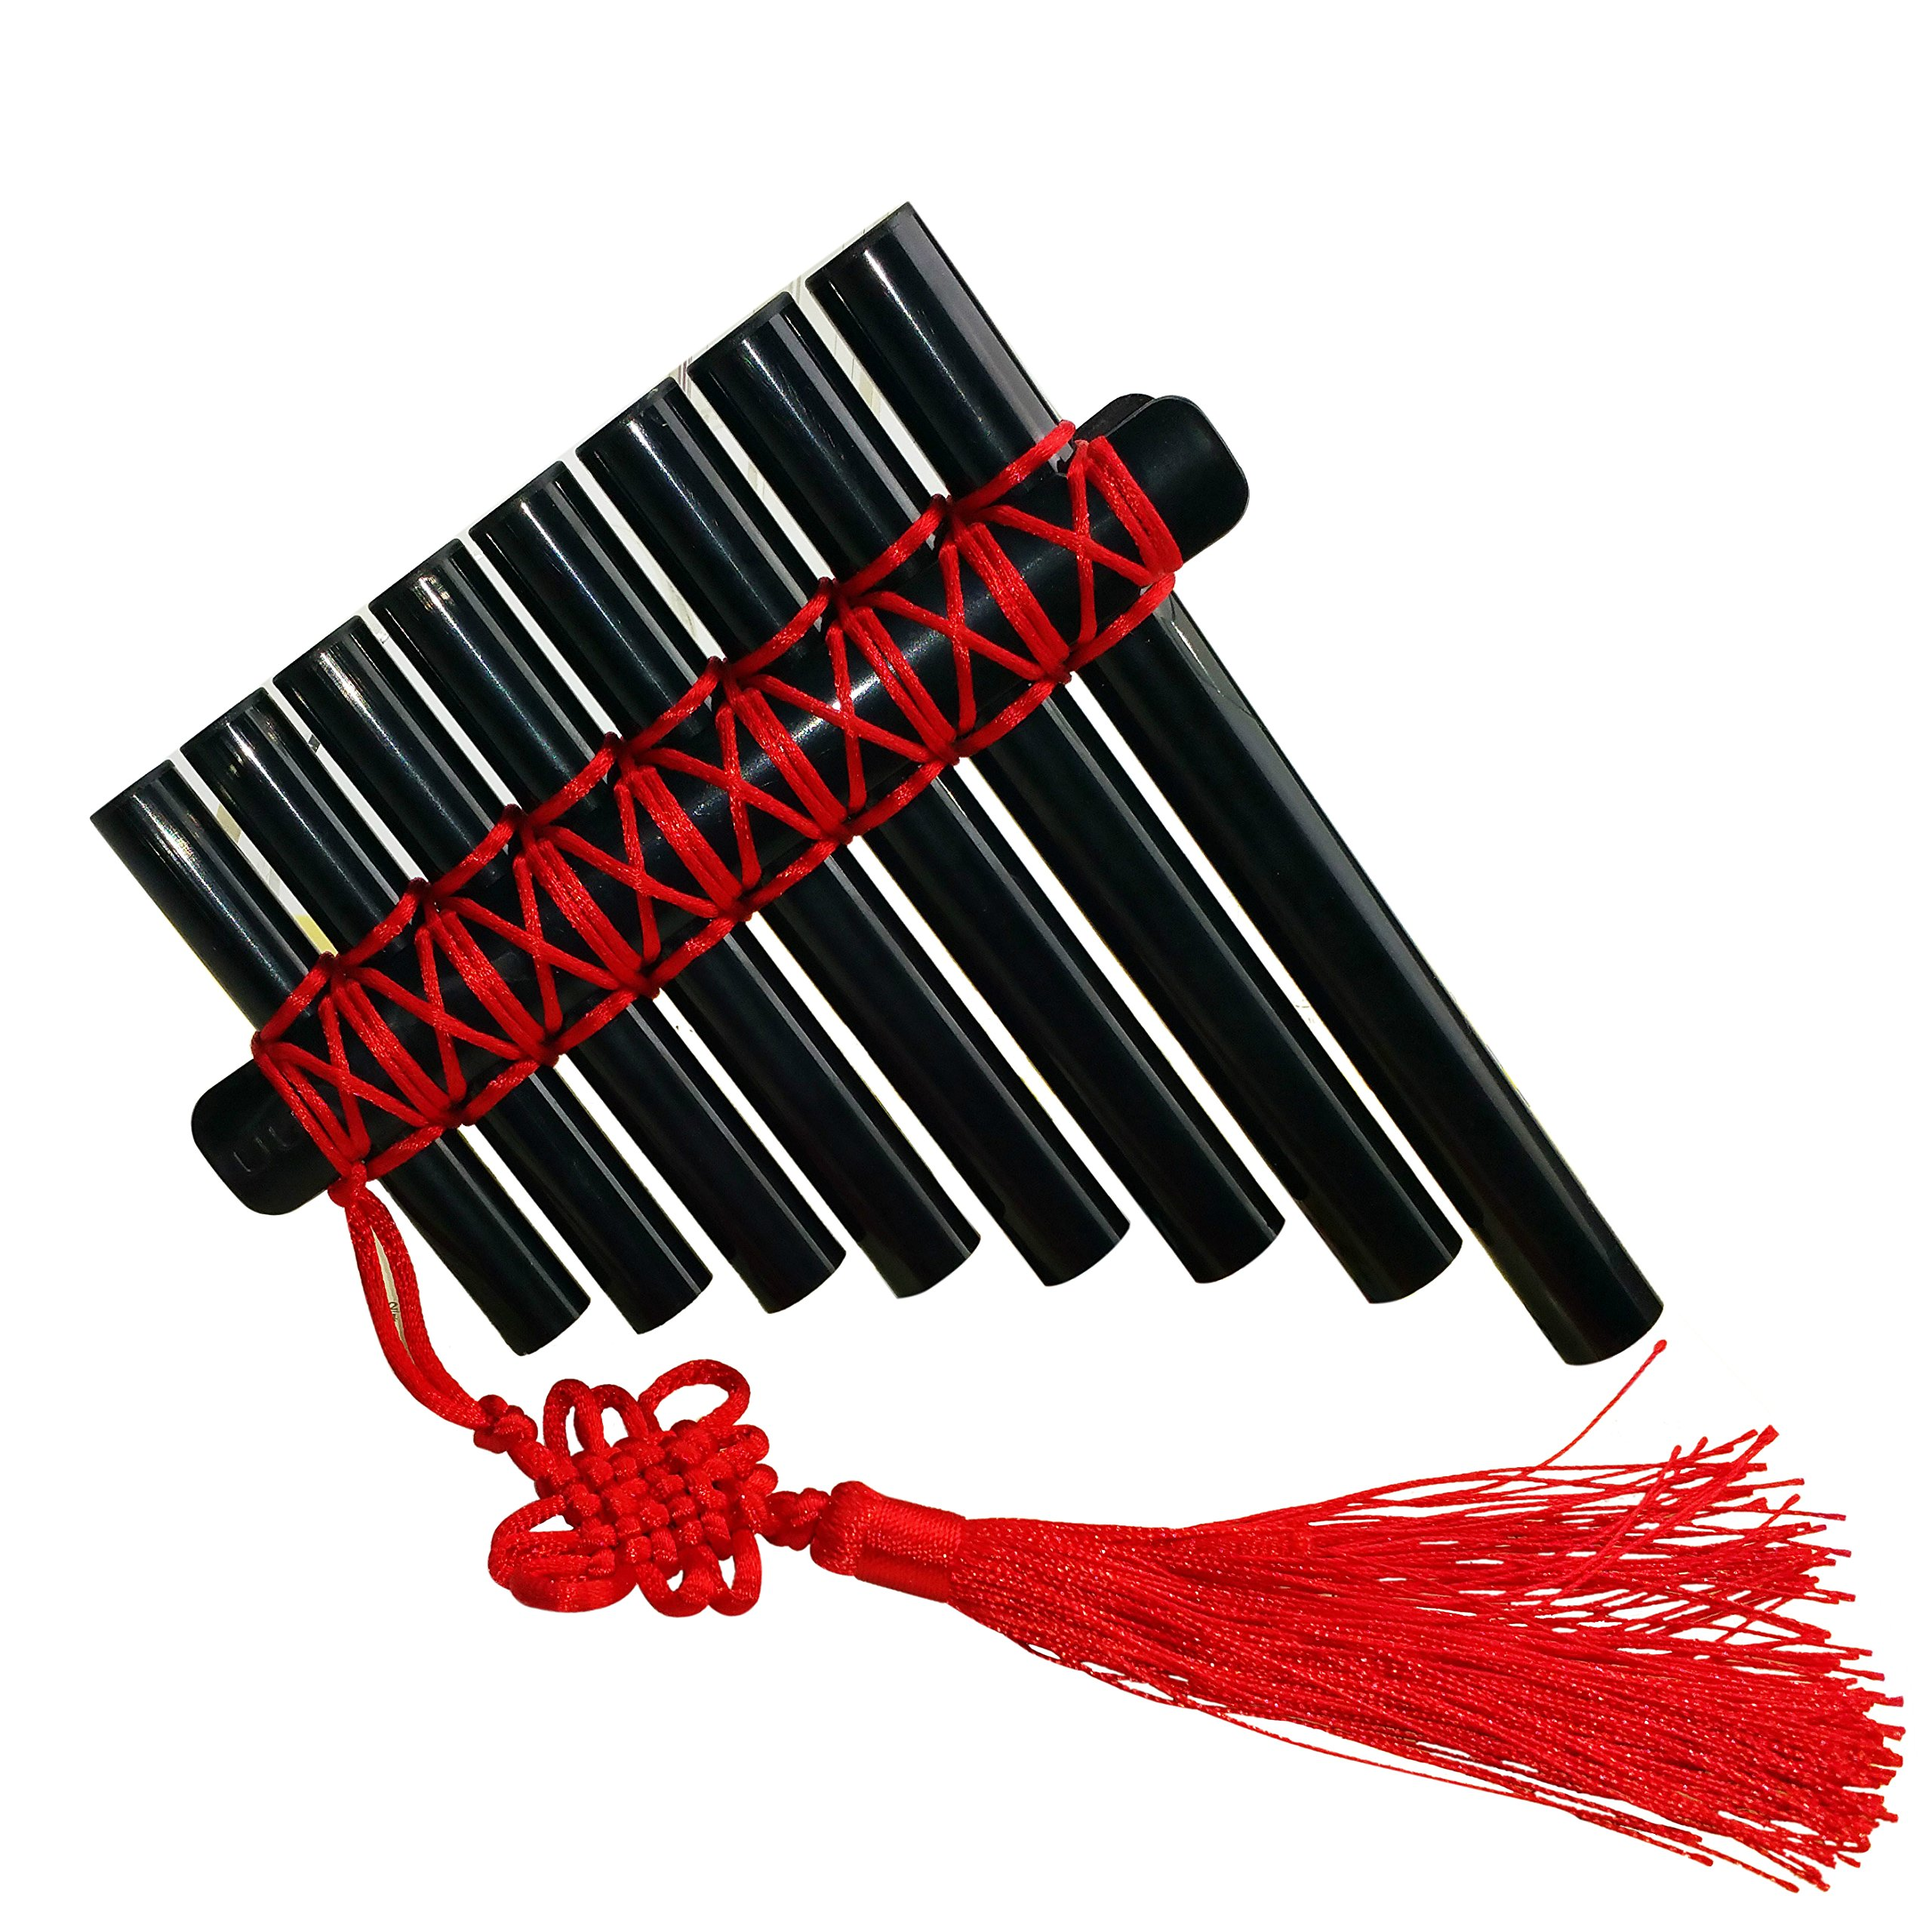 L'MS Panflute Plastic Panpipes Percussion Woodwind Instrument (Plastic-Black)